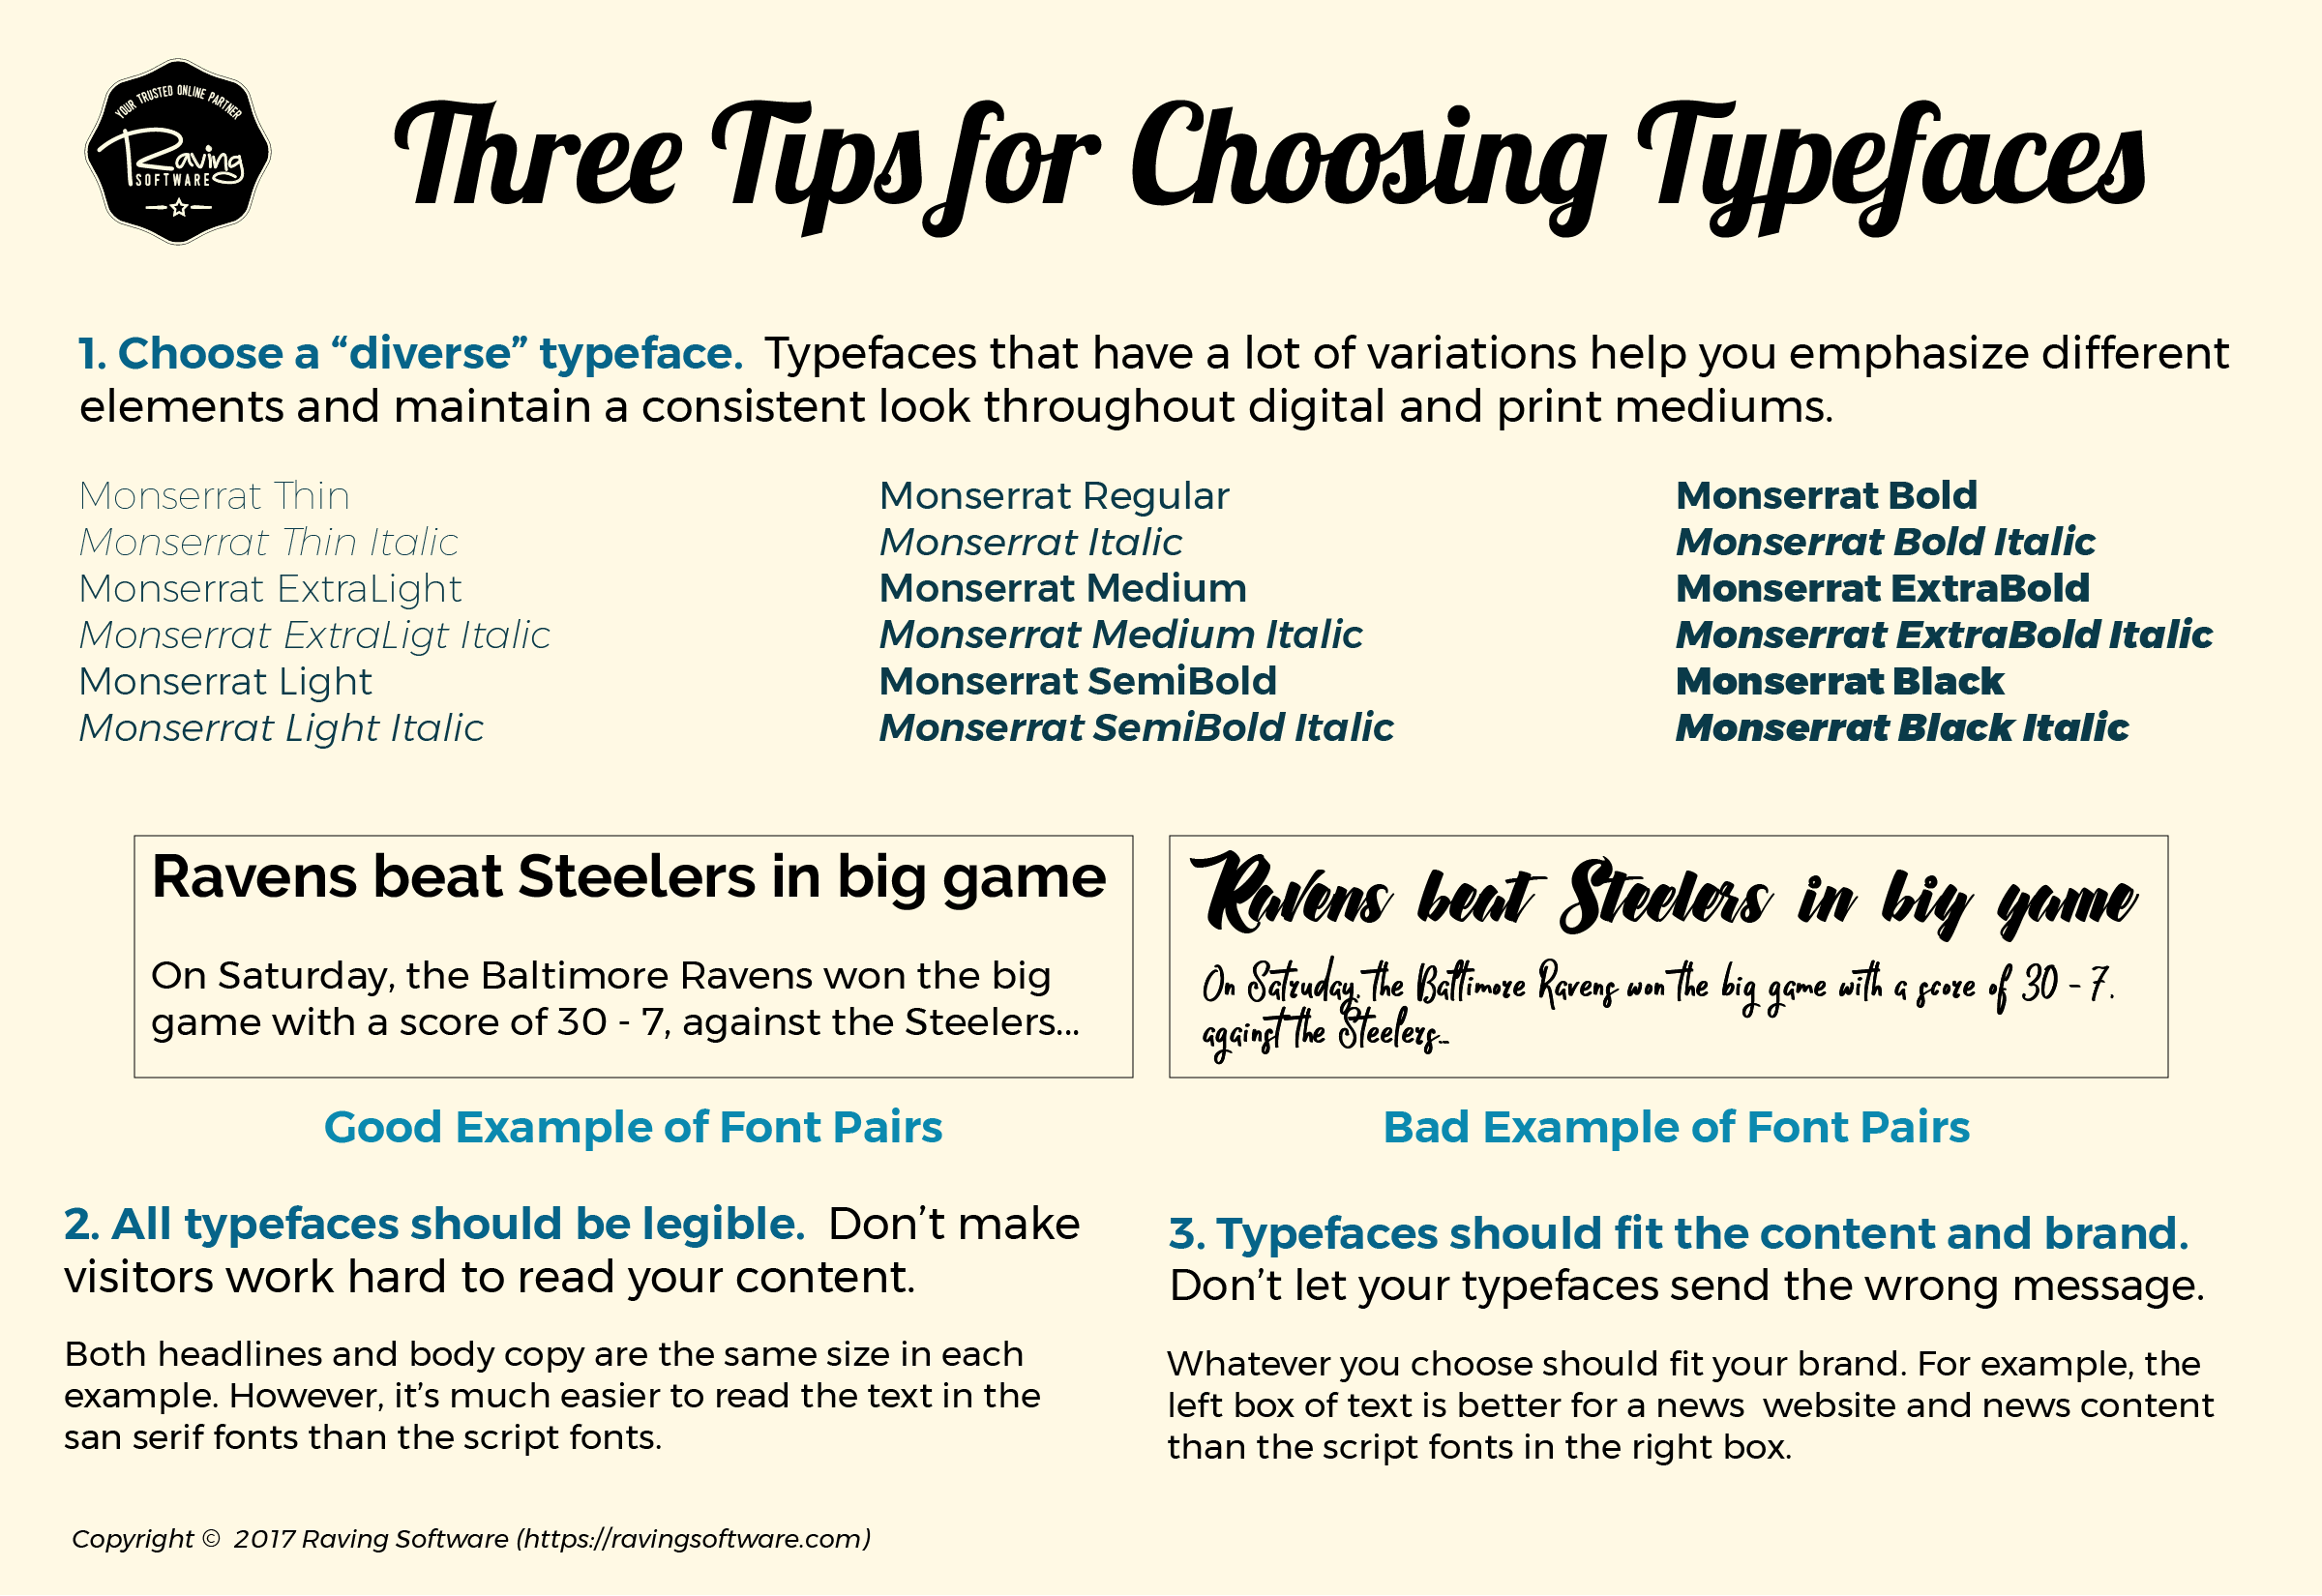 Three tips for choosing typefaces